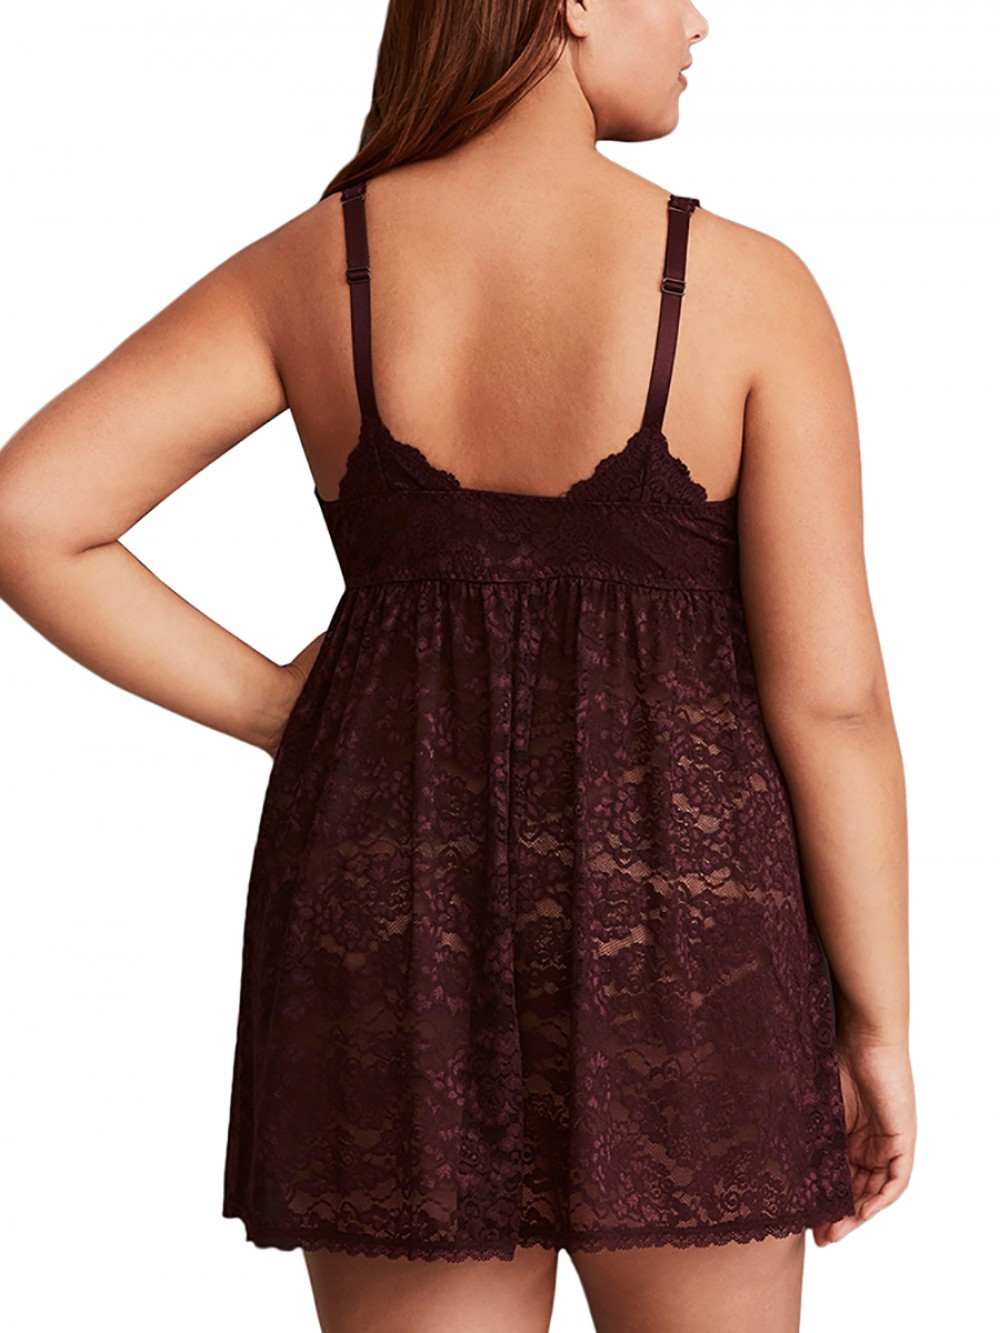 Plus Size Chic Brown Backless Babydoll No Sleeves Floral